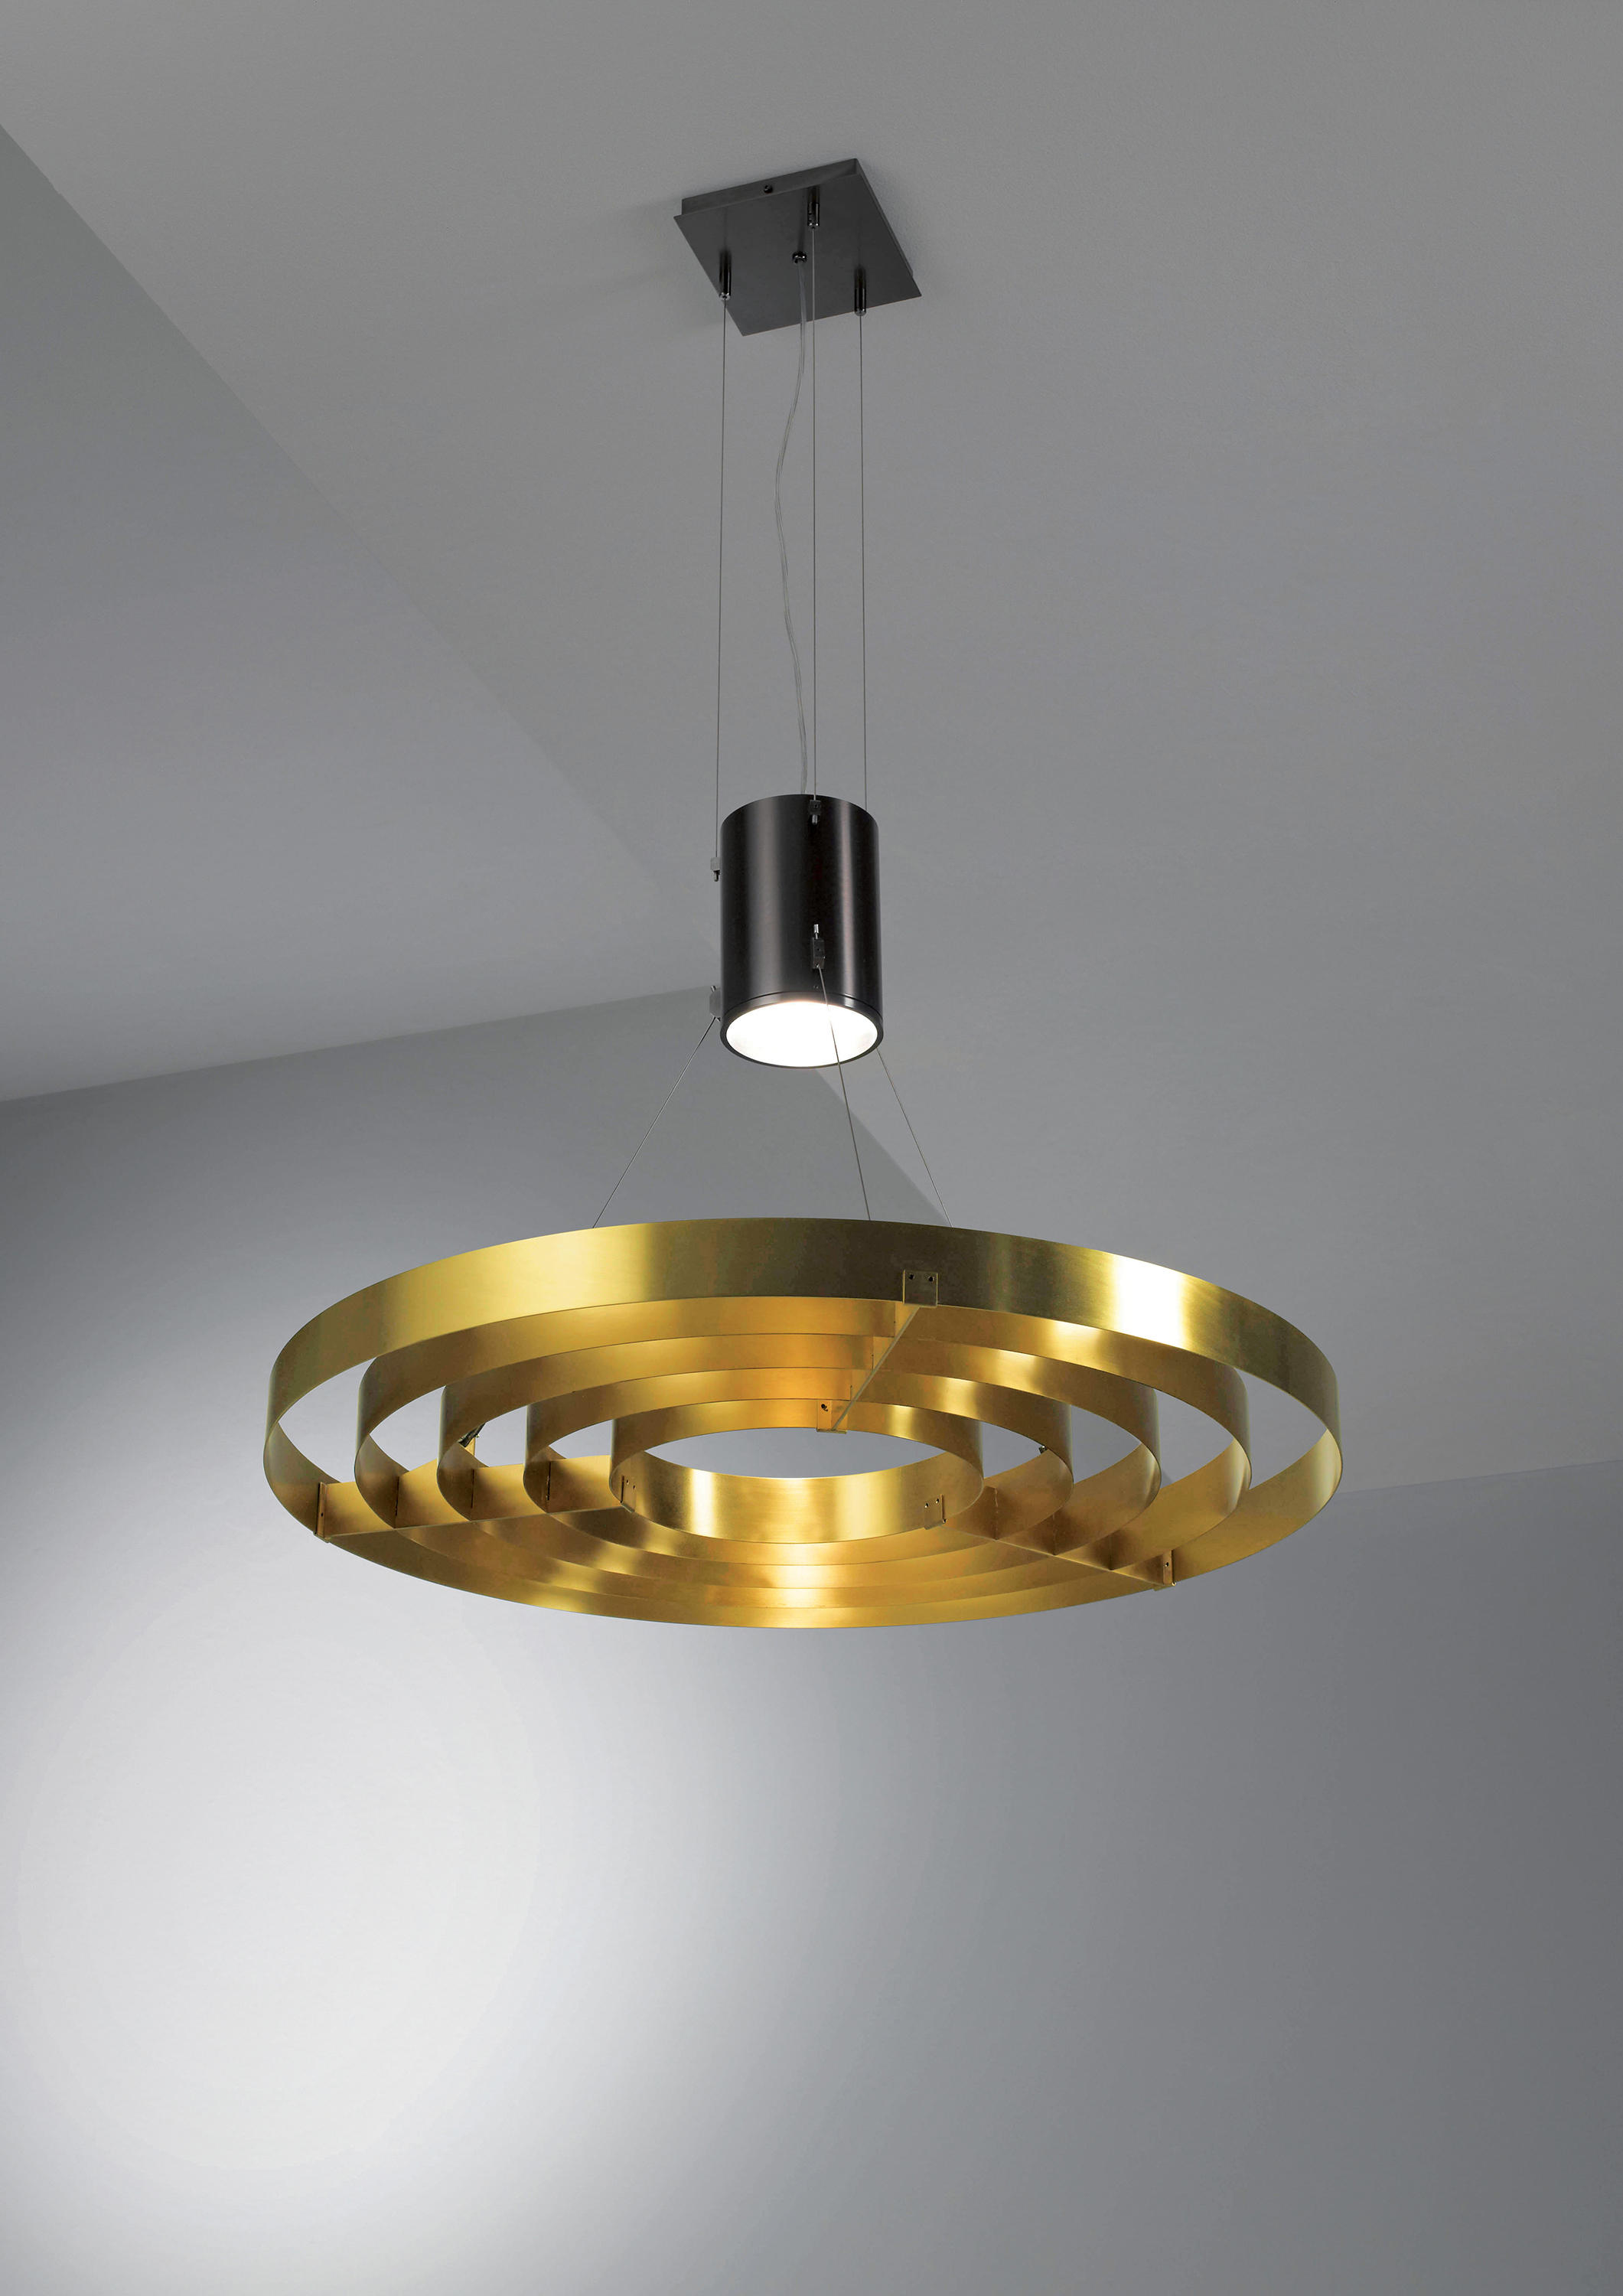 Dark Light Suspended Lights From Laurameroni Architonic